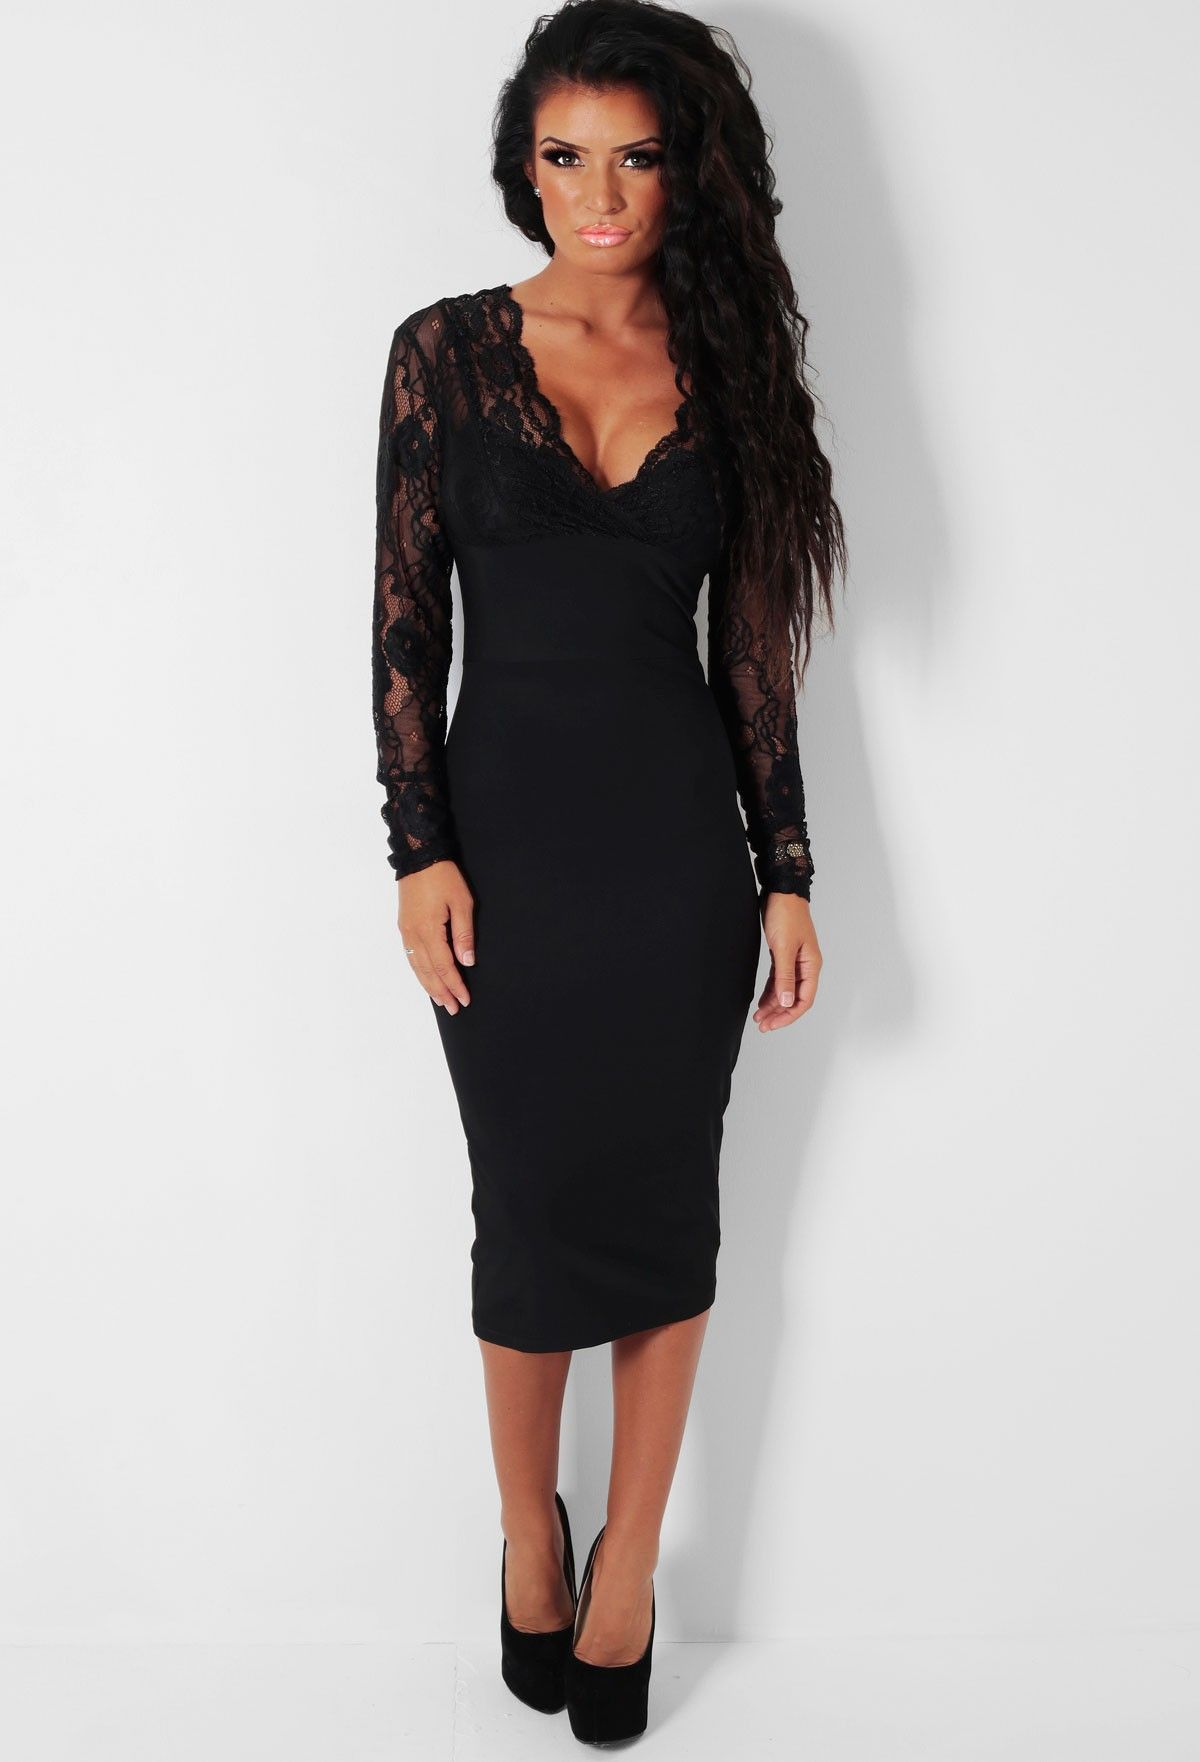 5ab38d56831 Ariana LUXE Black Lace Panel Bodycon Midi Dress - 8